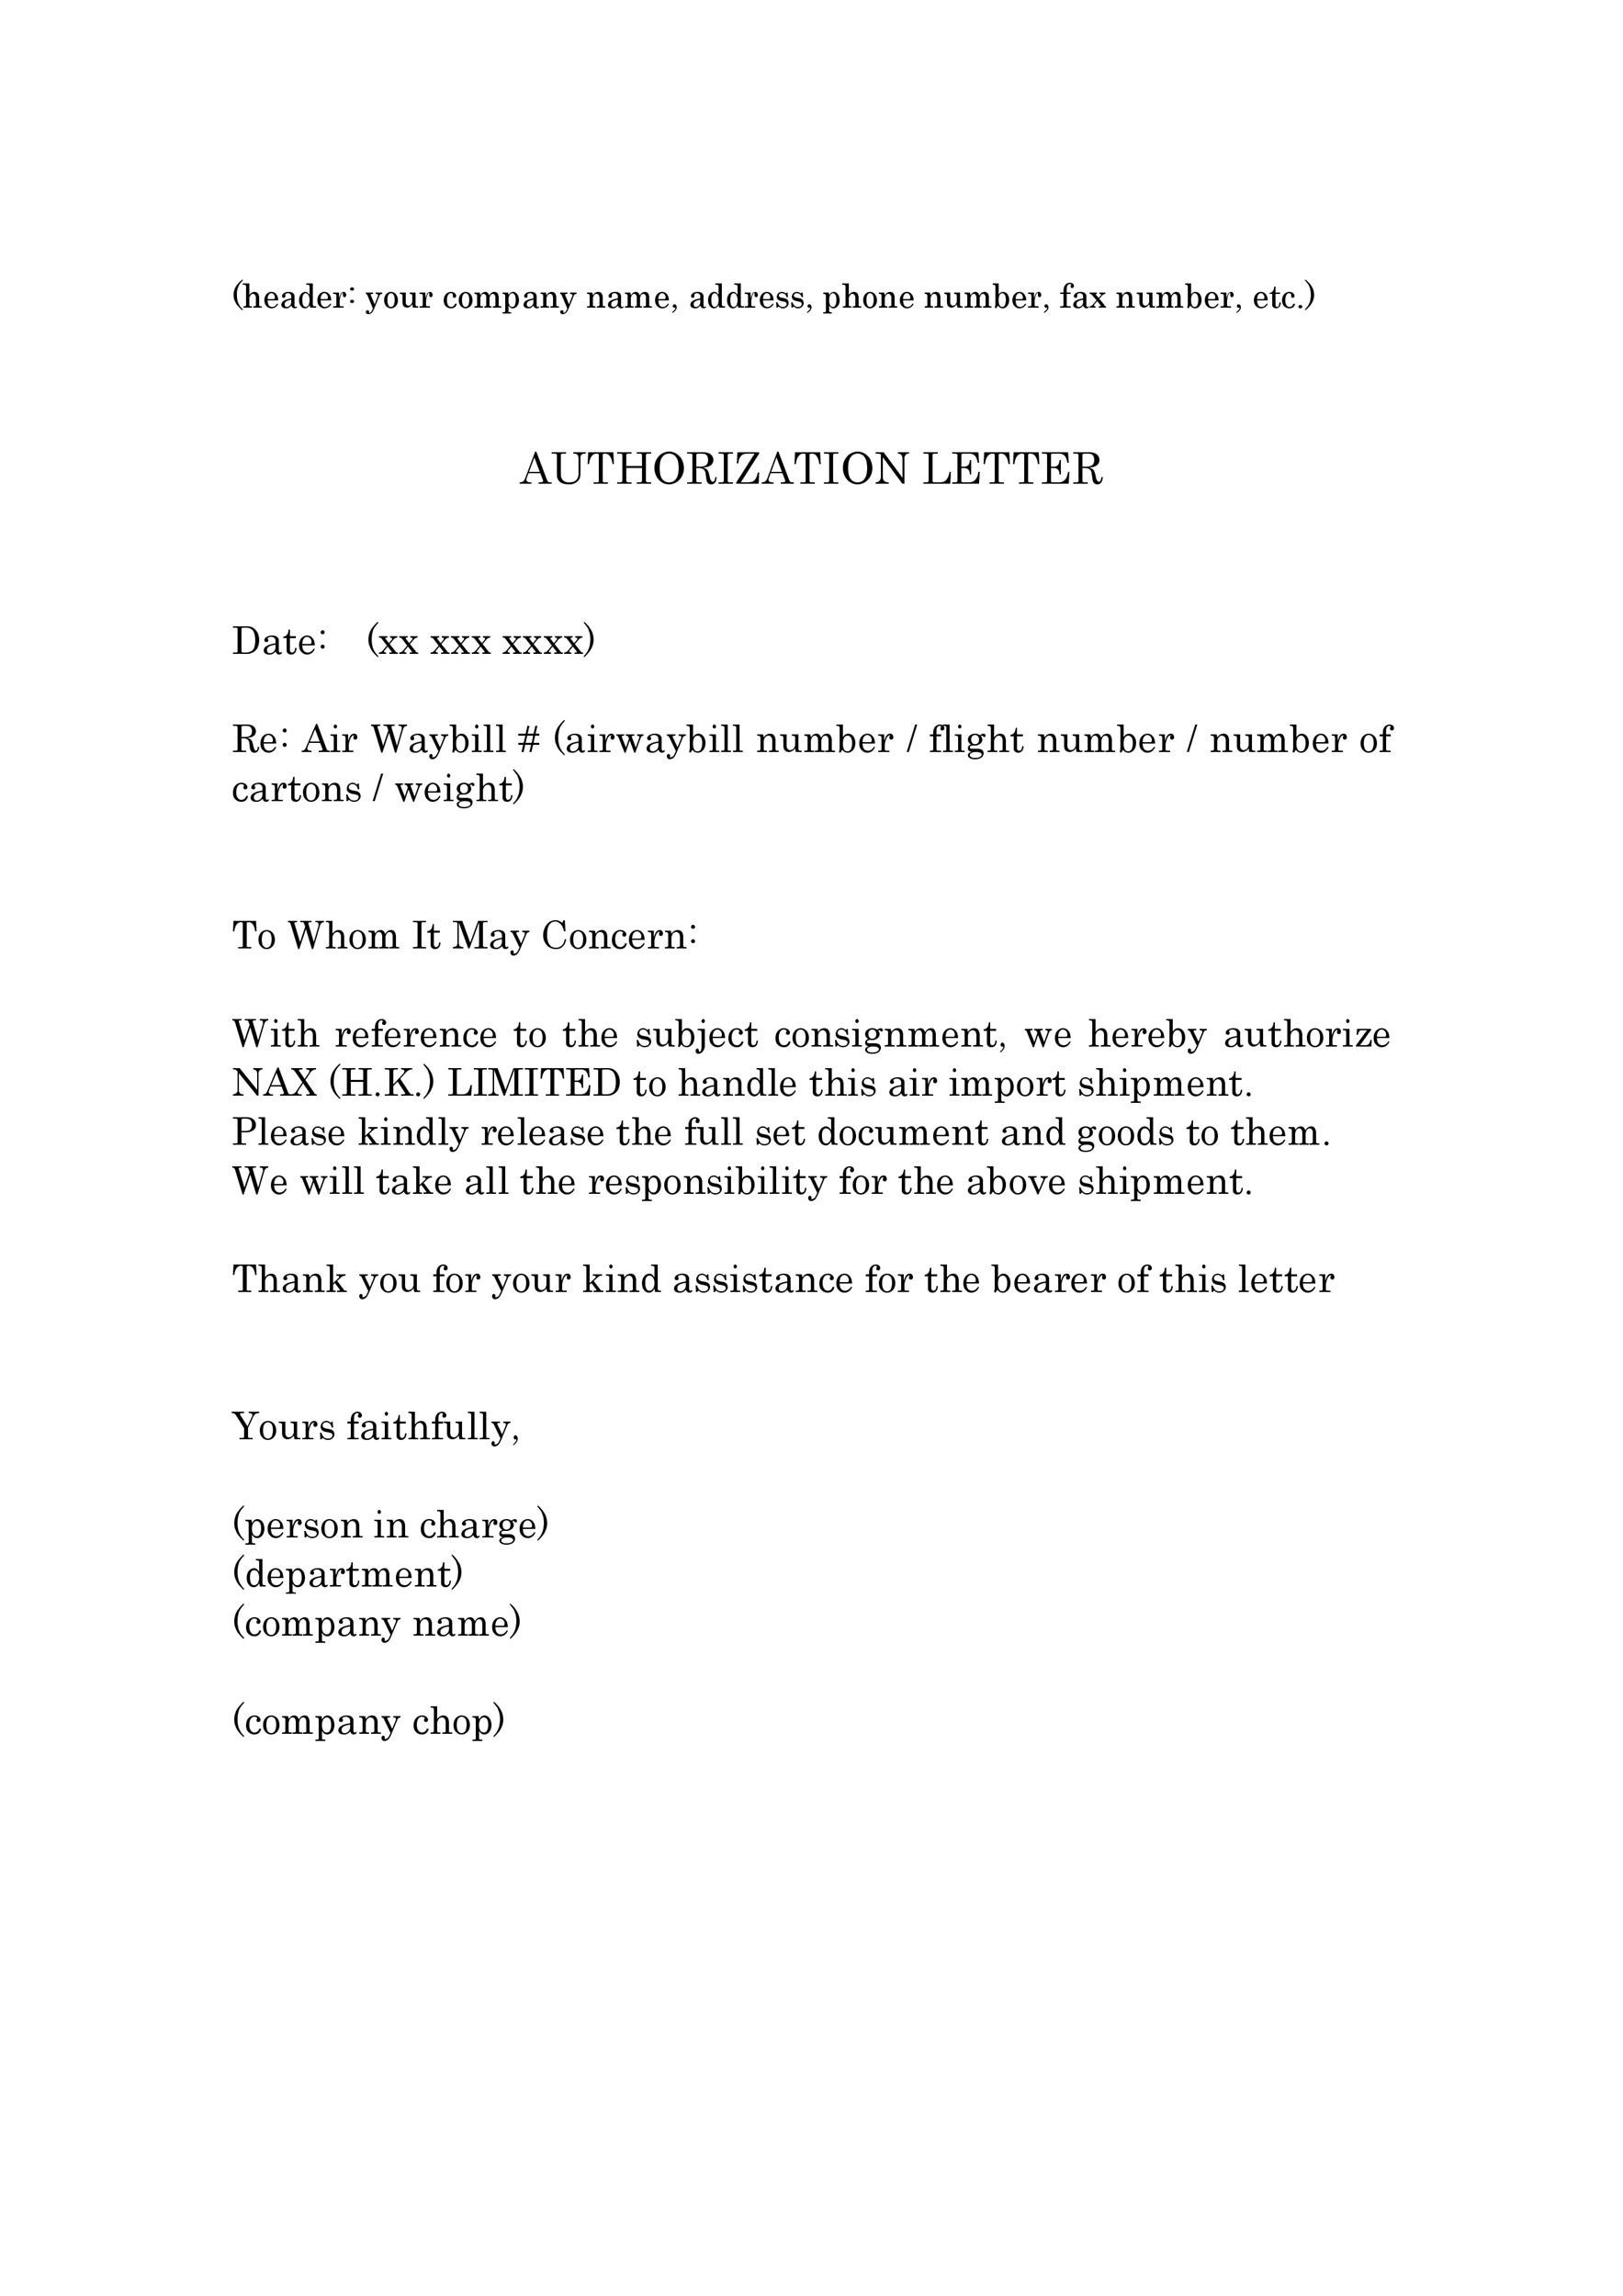 Authorization Letter 33